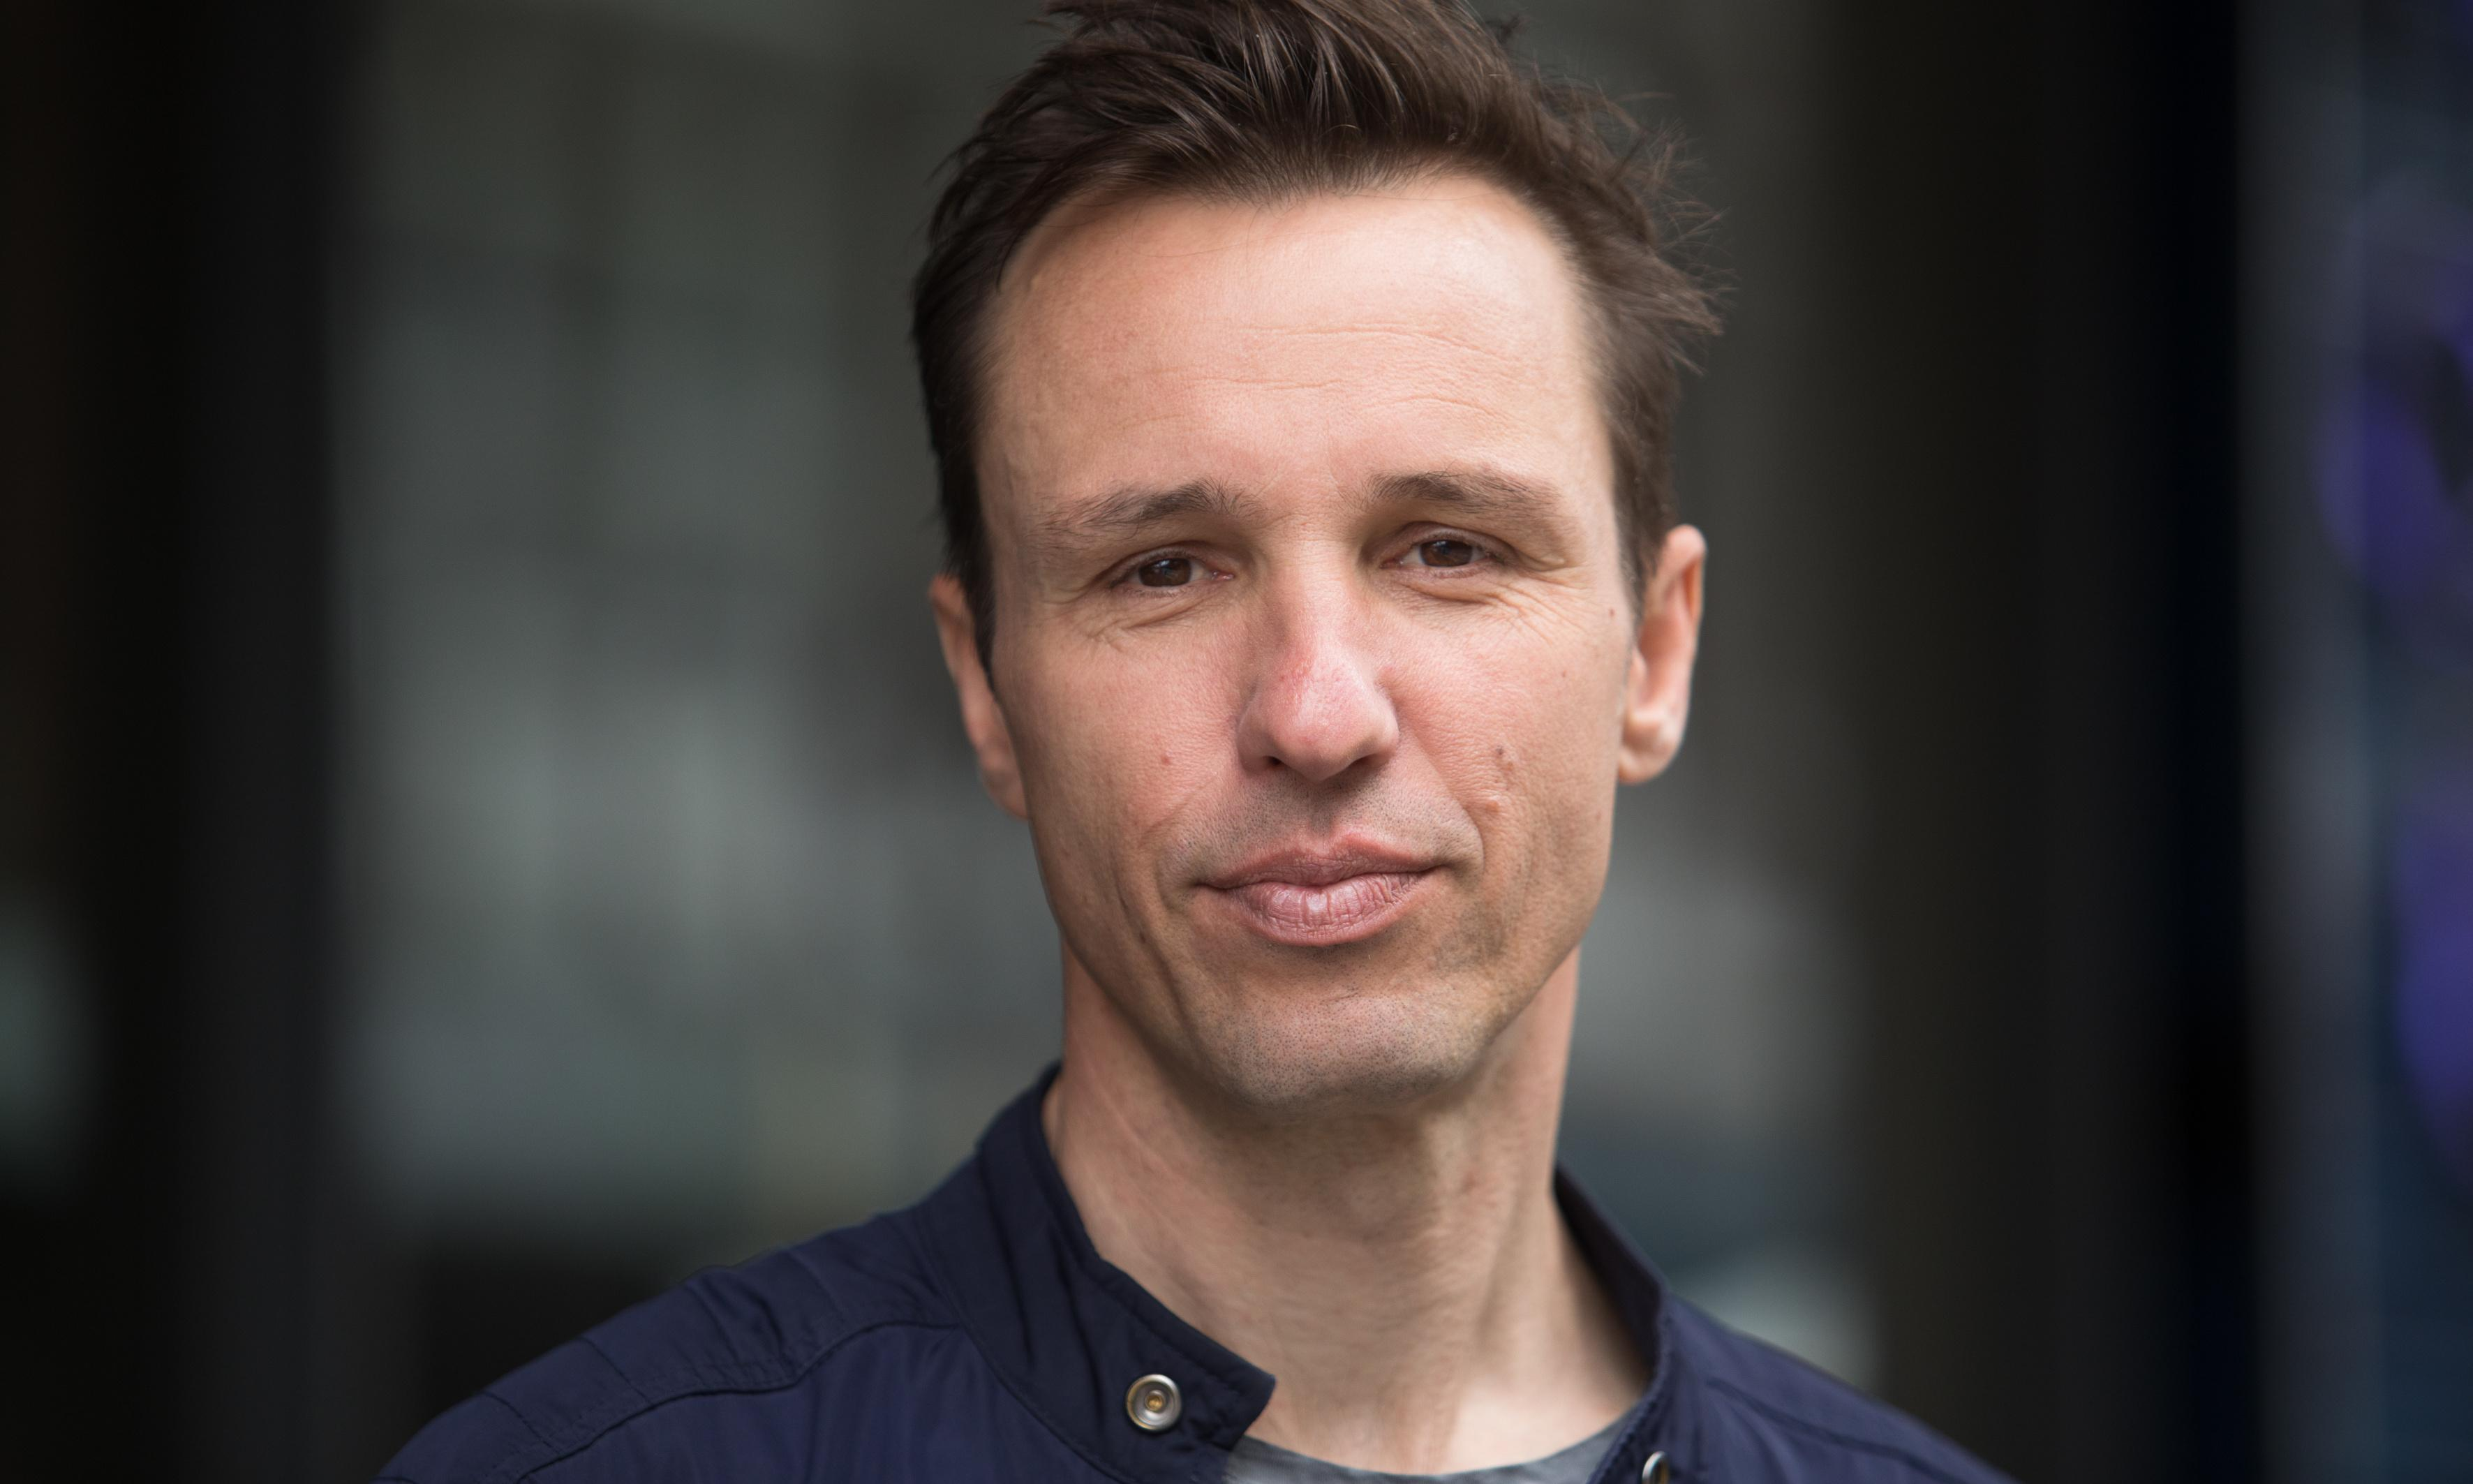 Markus Zusak: 'I knew Sidney Sheldon was deemed trashy, but I couldn't stop'